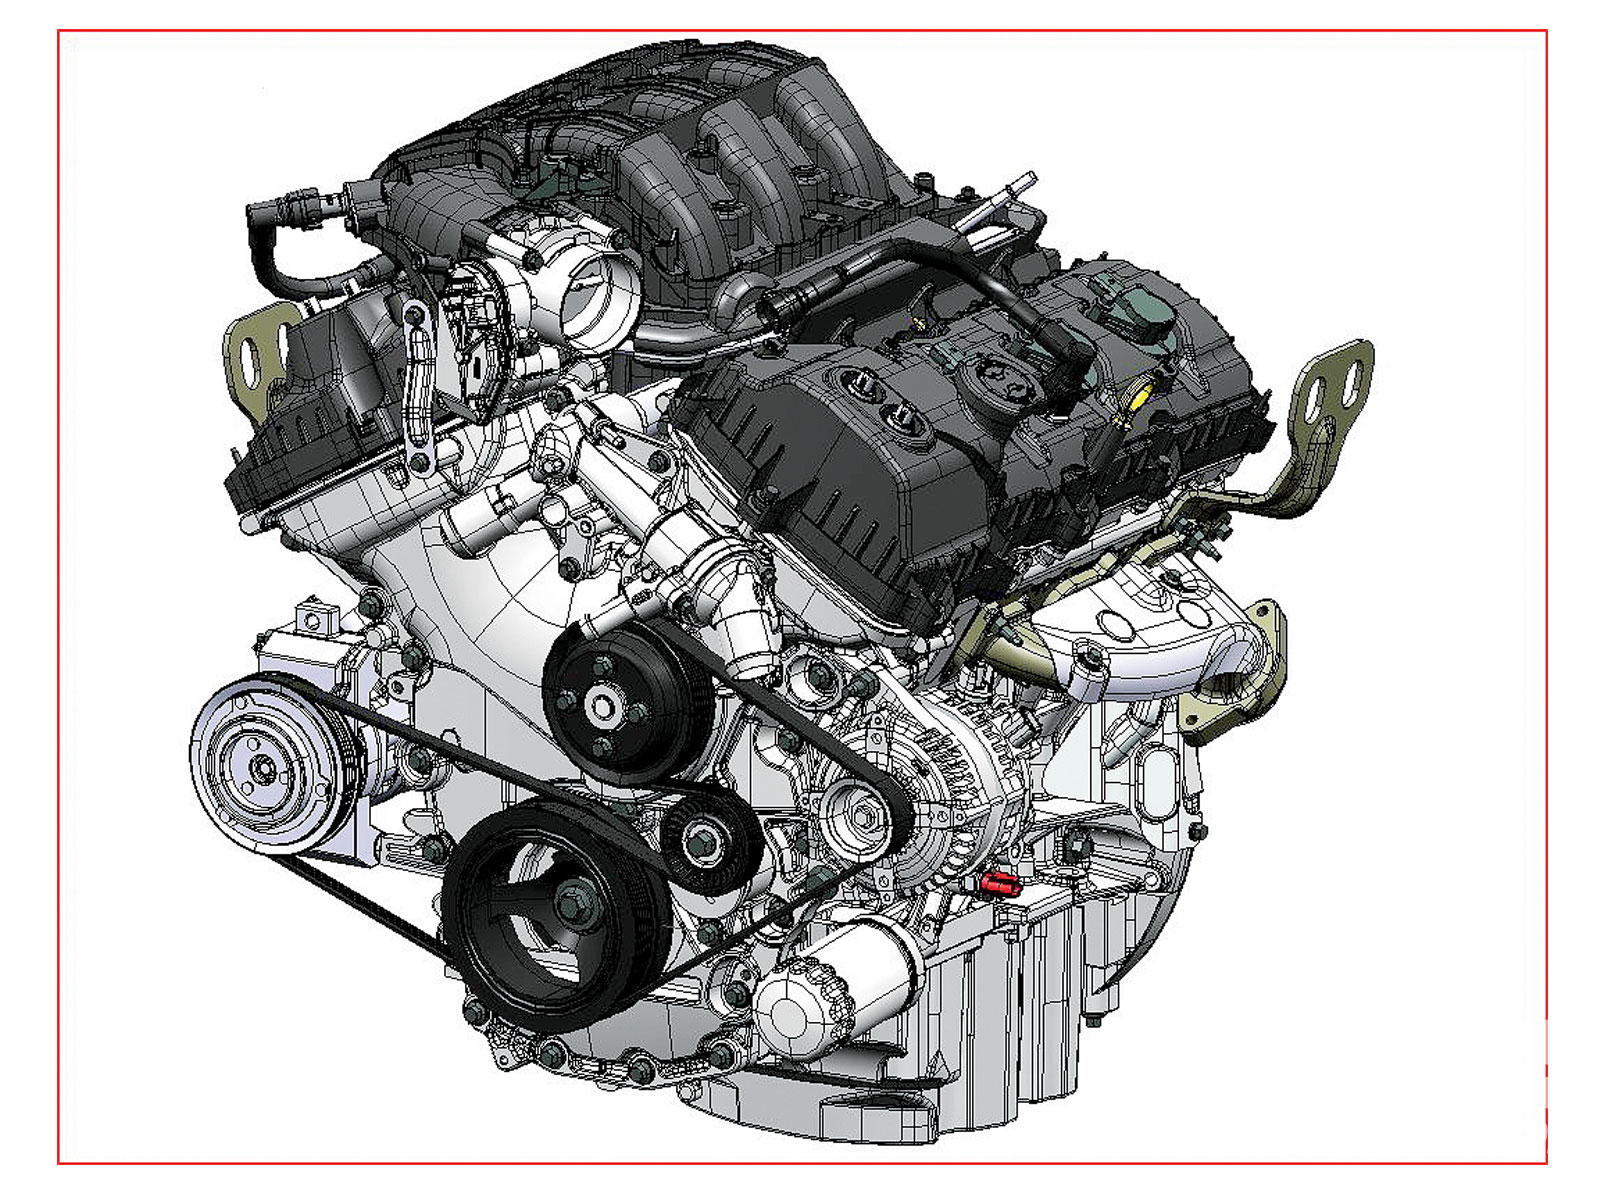 2015 17 Mustang Engine Specs 37l V6 4 7l Diagram Valve